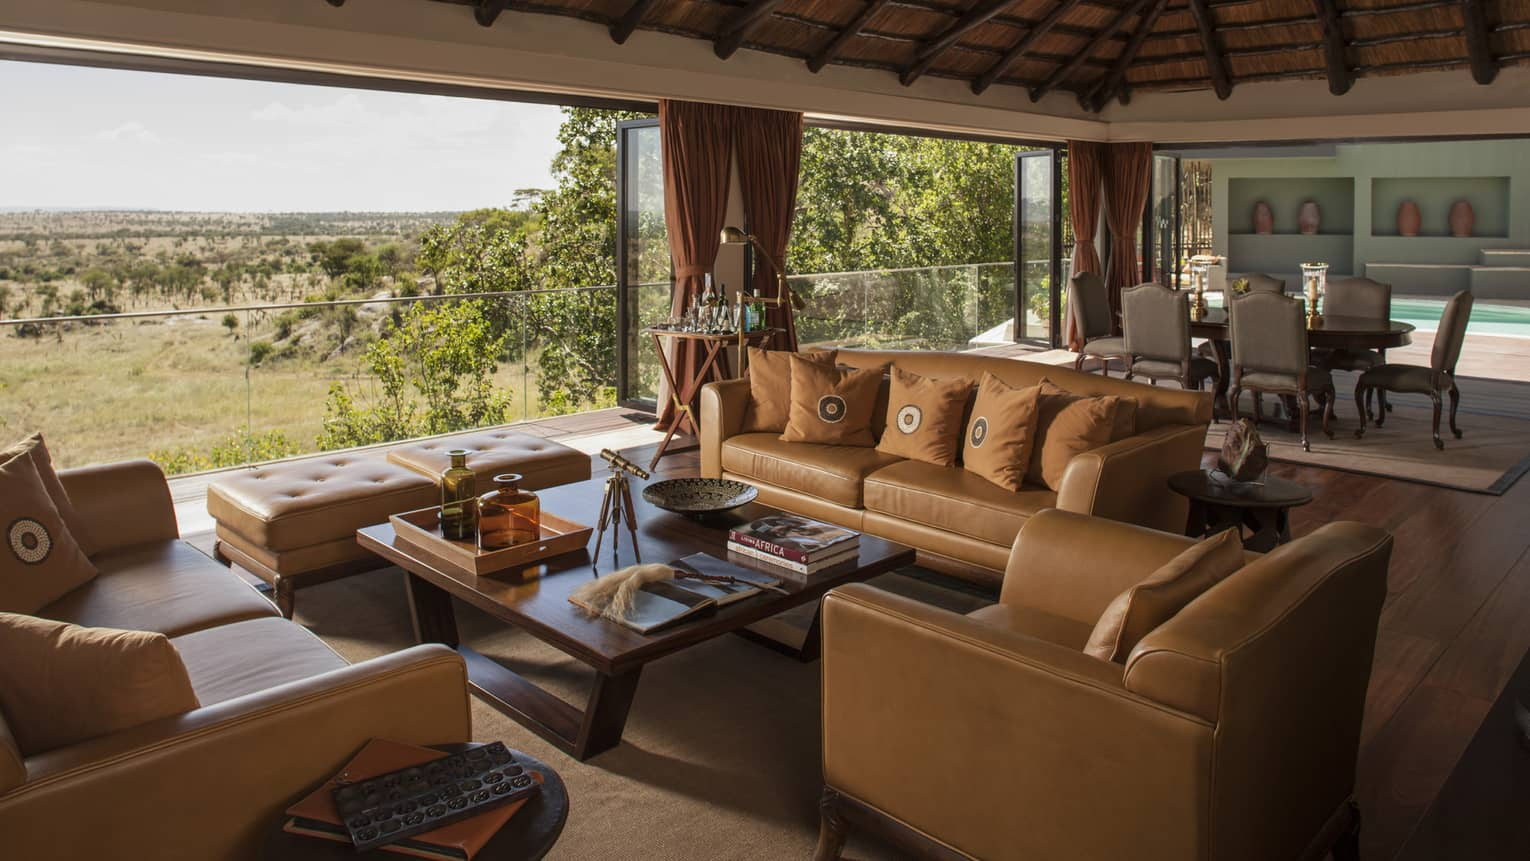 Presidential Villa tan leather sofas, chairs around table, large dining room, open wall